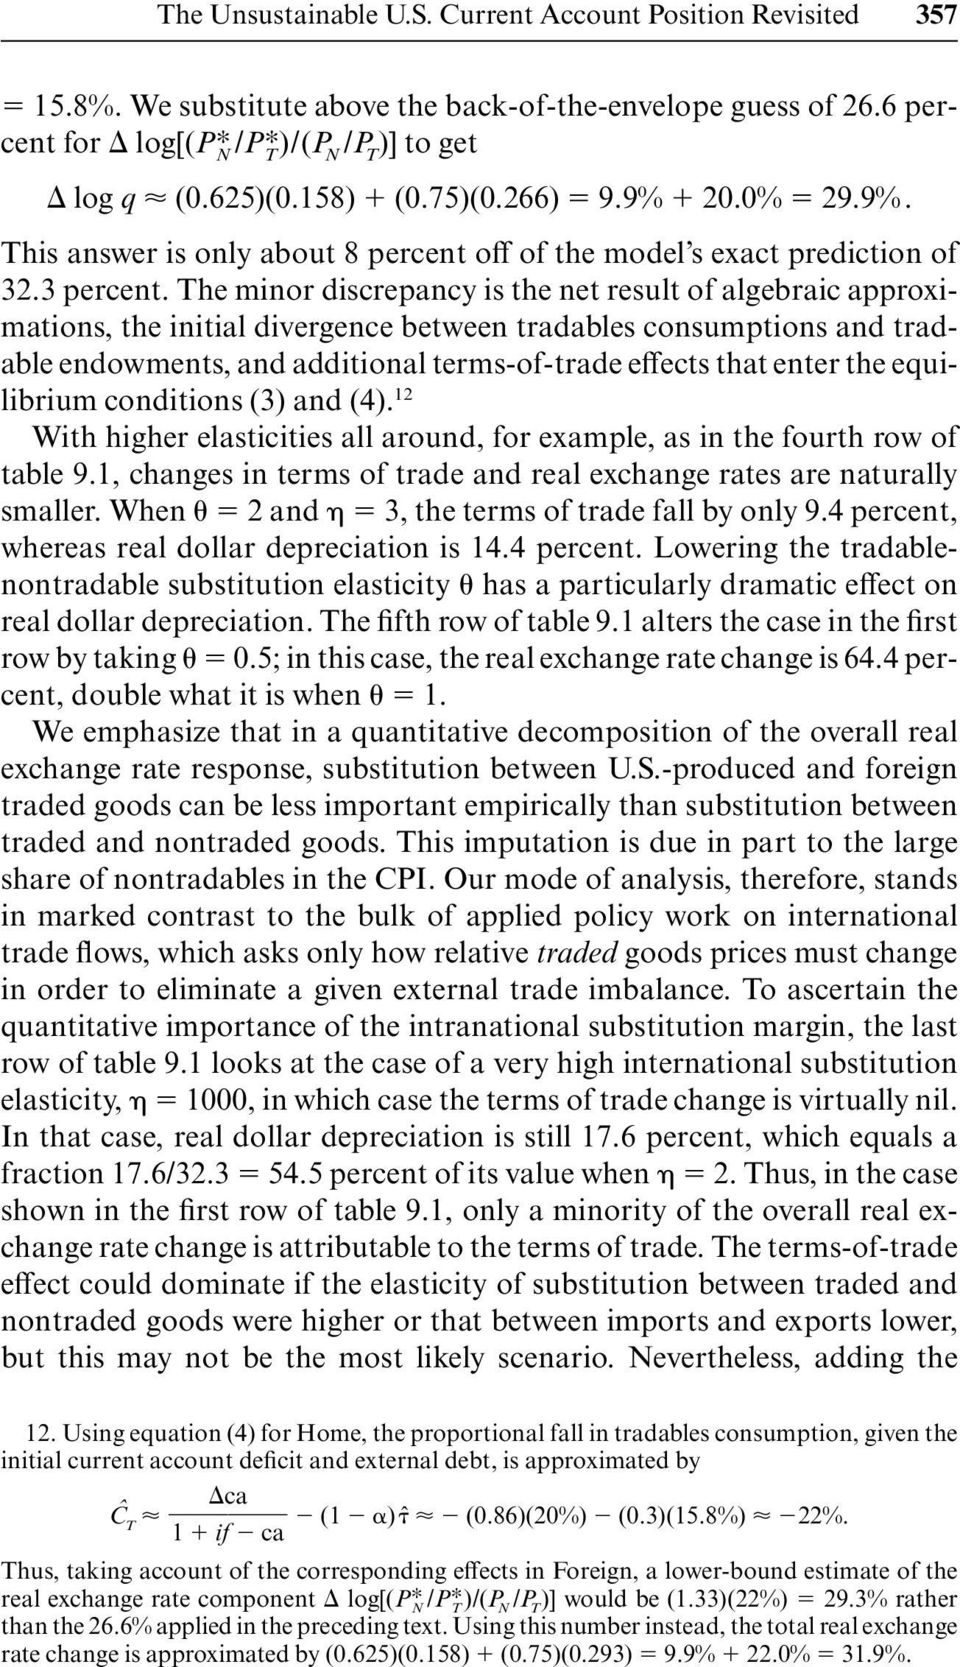 The minor discrepancy is the net result of algebraic approximations, the initial divergence between tradables consumptions and tradable endowments, and additional terms-of-trade effects that enter